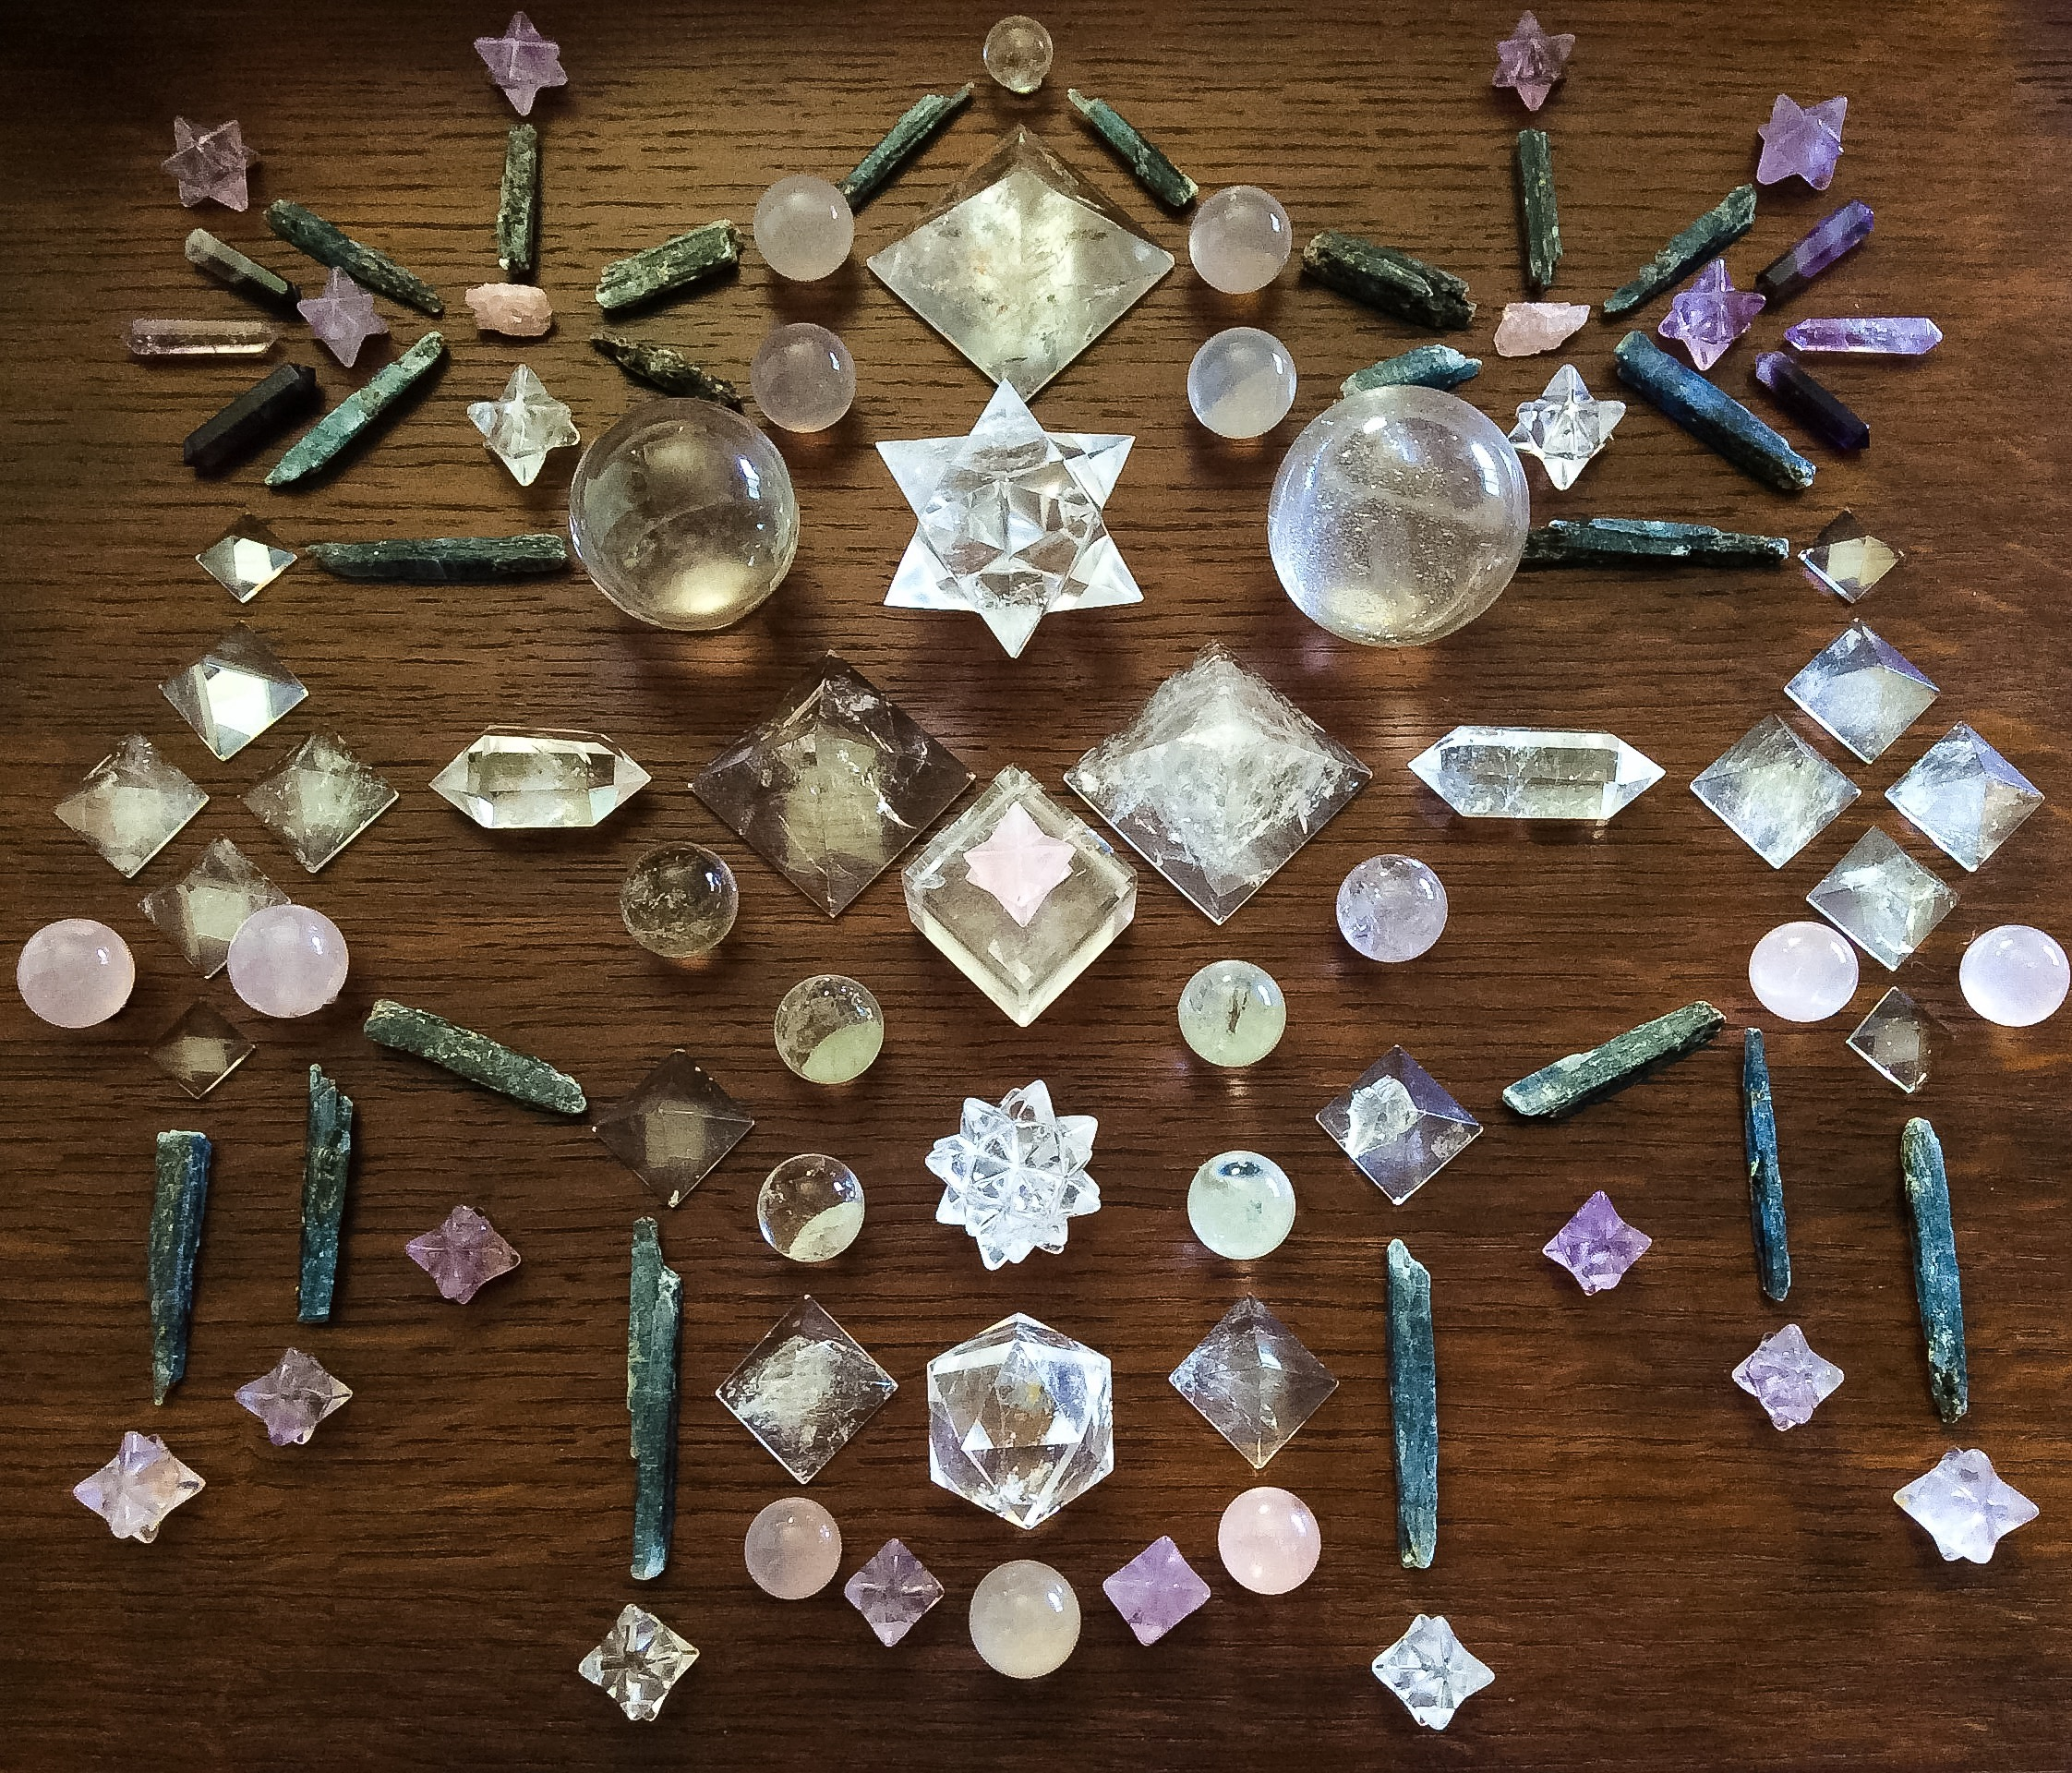 Quartz, Morganite, Kyanite, Pink Girasol, Amethyst and Rose Quartz Crystal Gride by Woodlights Woudlicht